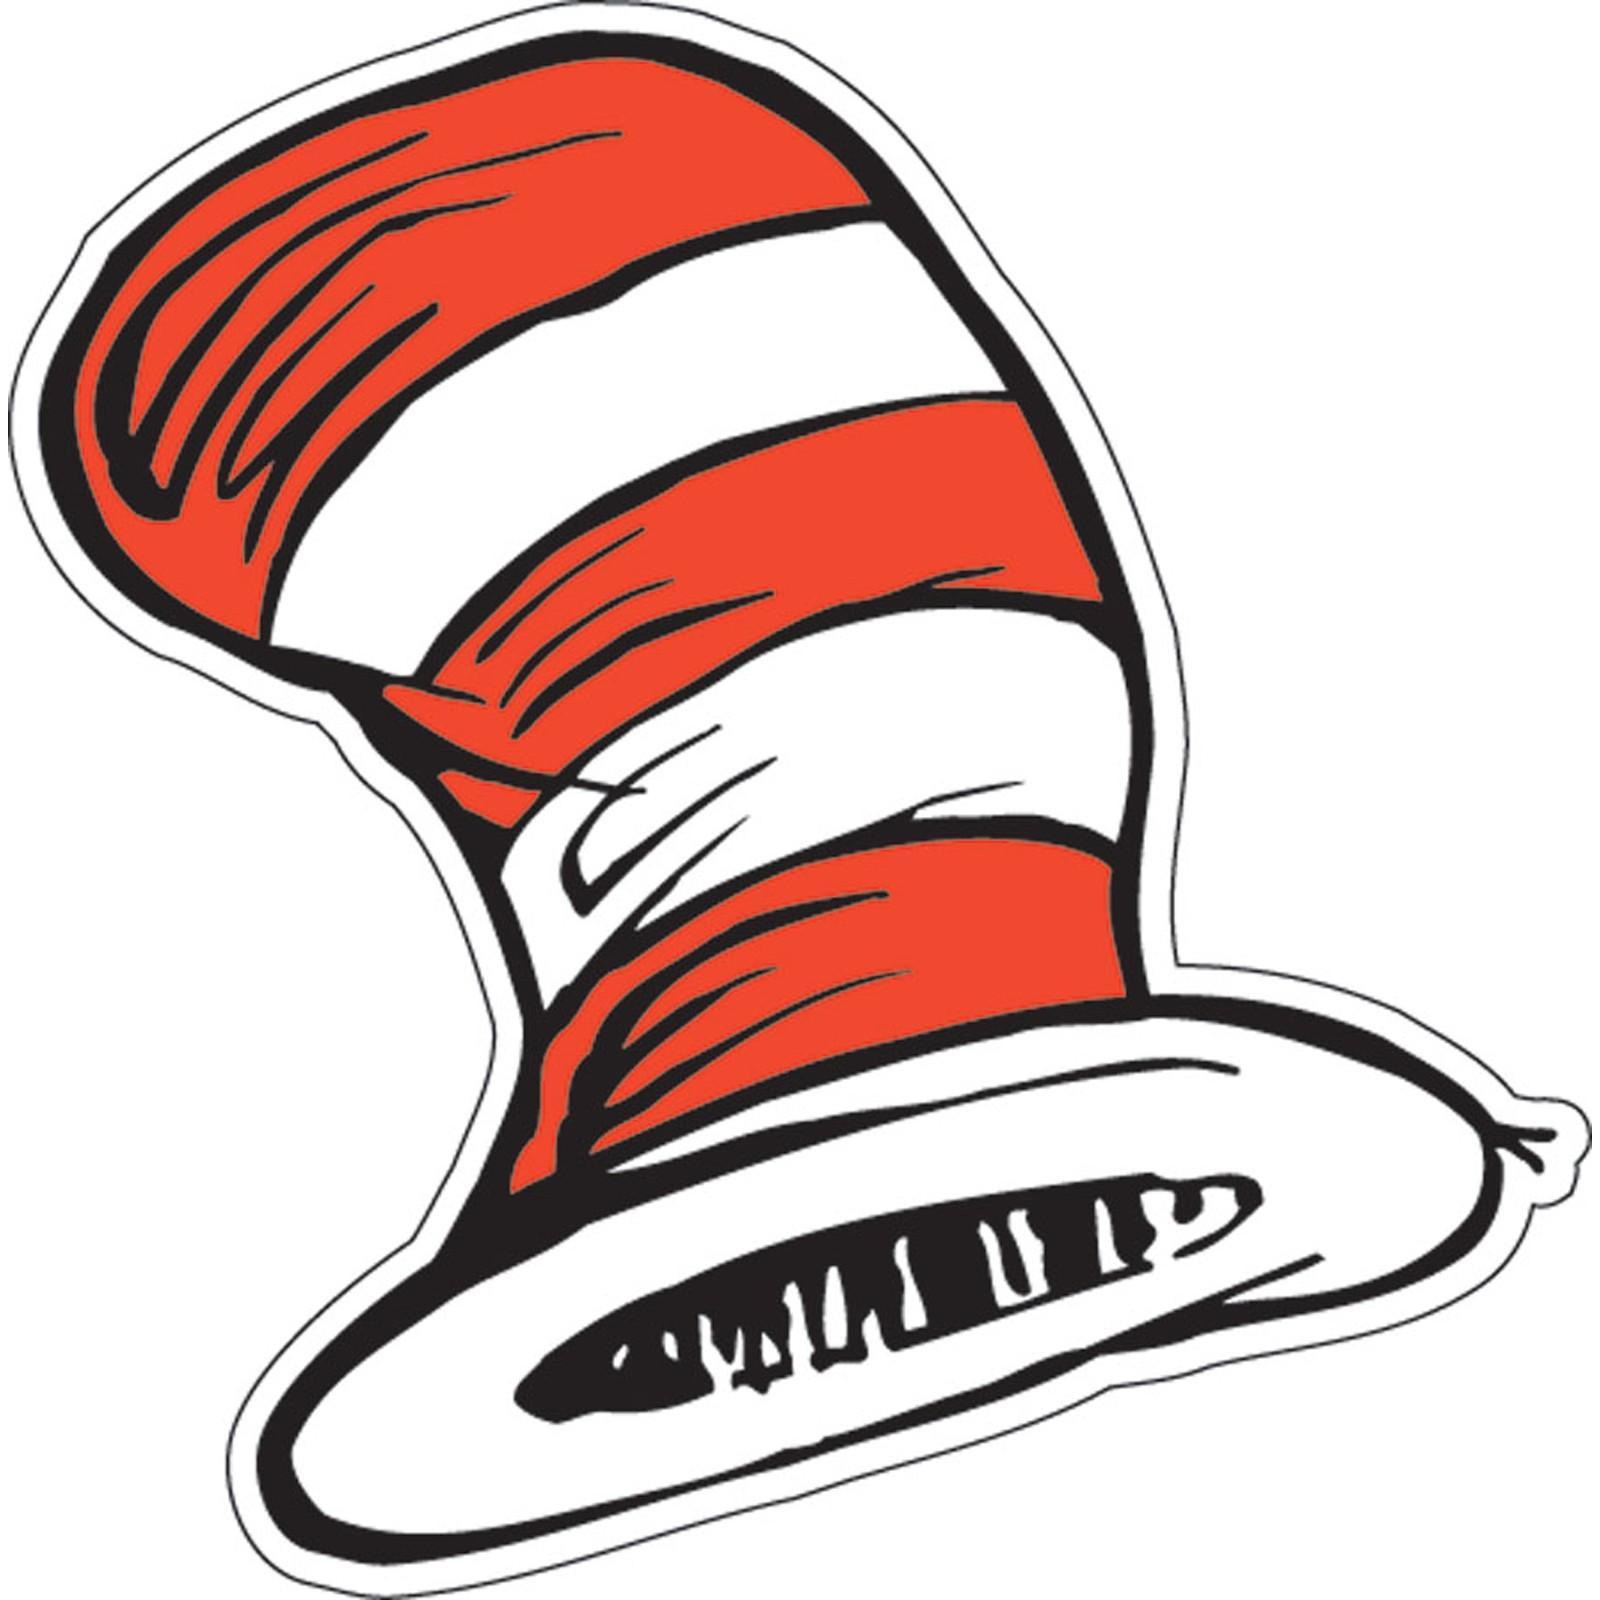 Dr. Seuss: The Cat In The Hat Pics, Cartoon Collection